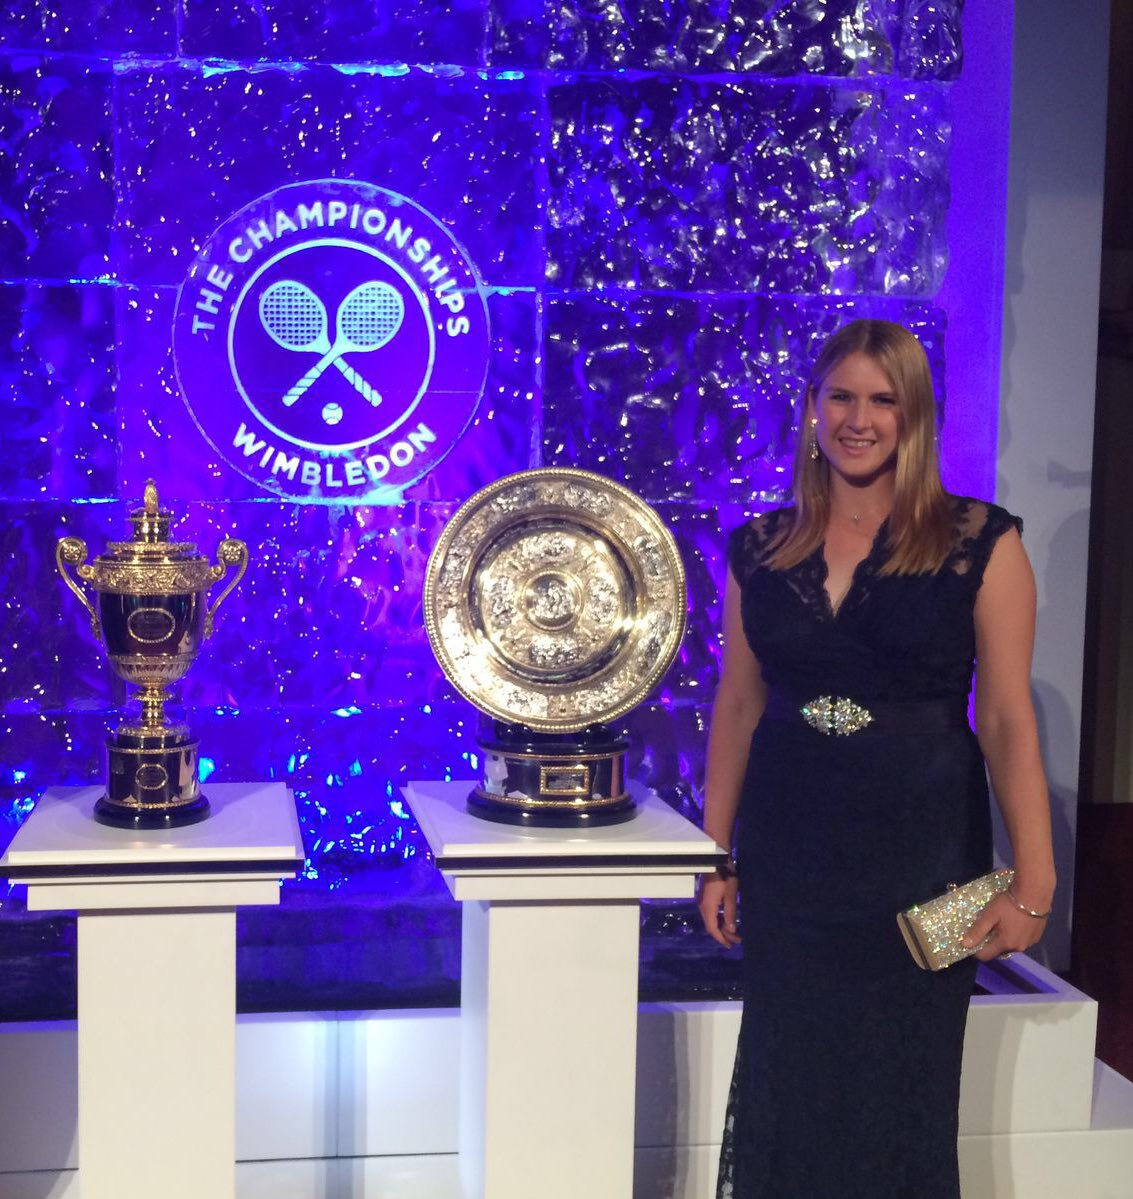 An amazing night at the champions dinner to complete #Wimbledon 2016 https://t.co/06rcBNAvg7